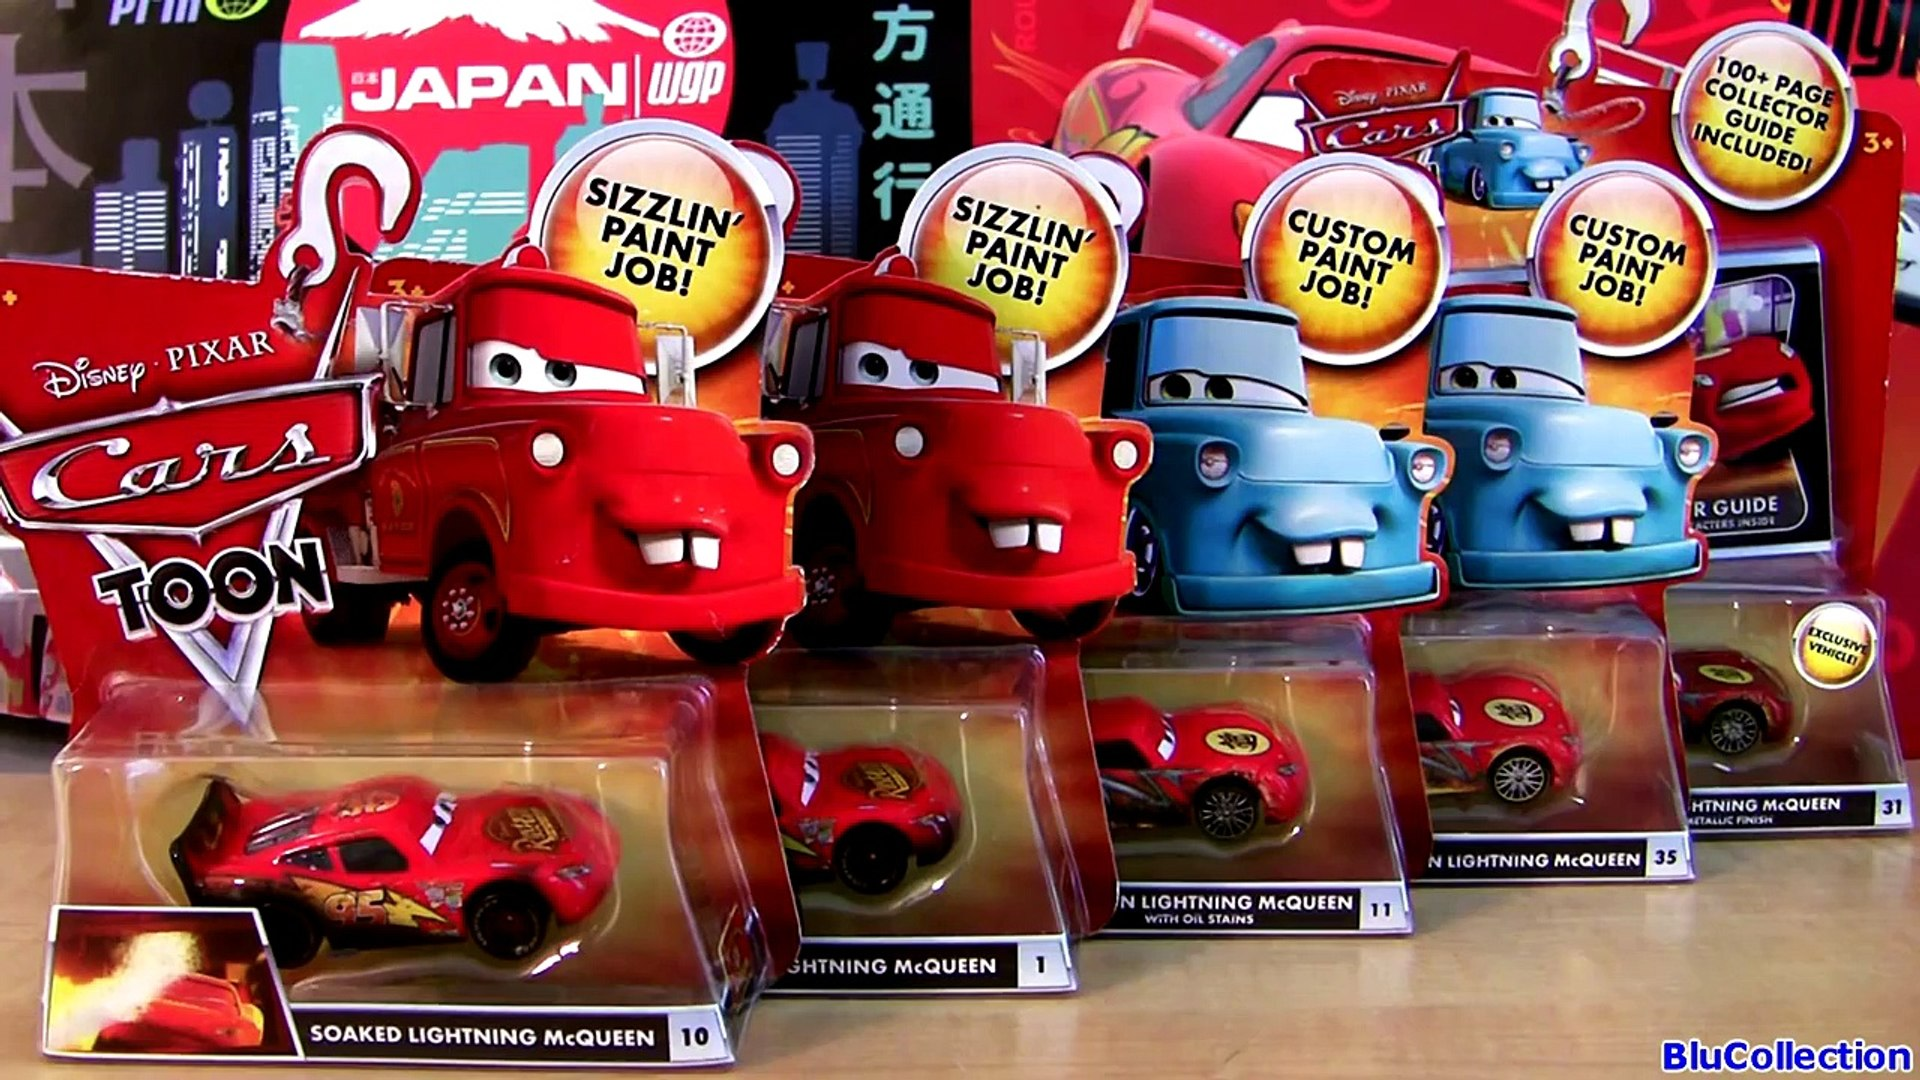 5 Mcqueen Cars Toon Dragon Lightning Mcqueen Oil Stains Metallic